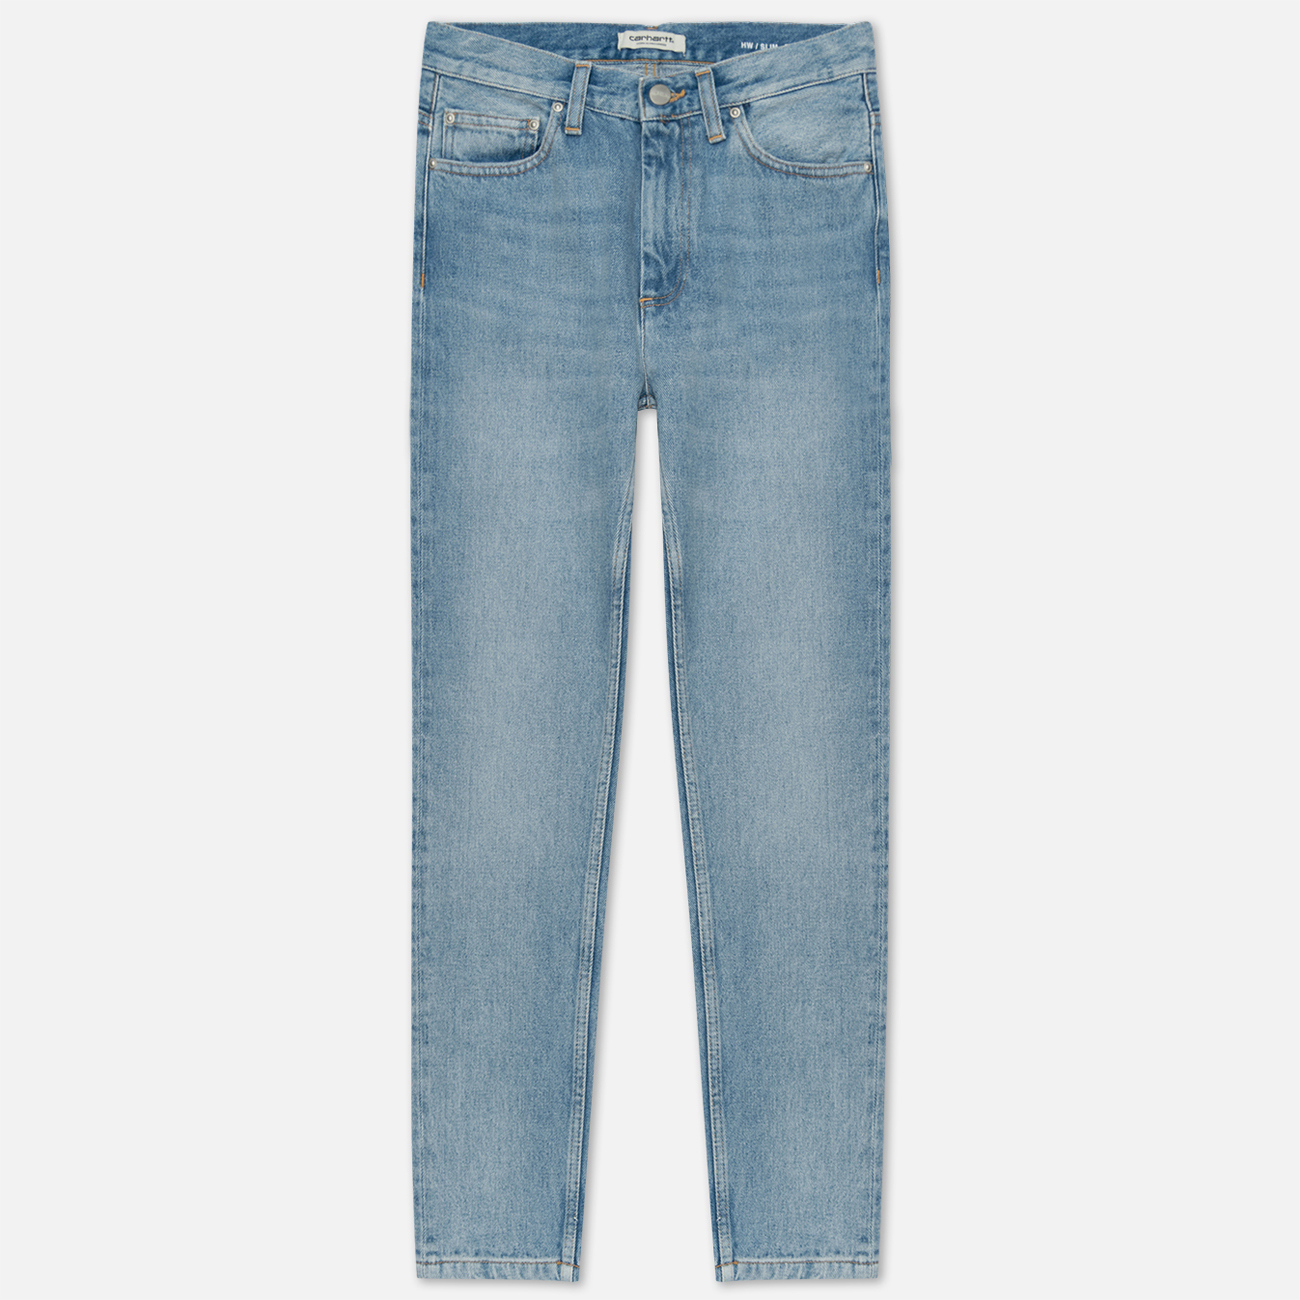 Женские джинсы Carhartt WIP W' Page Carrot Ankle Slim 13 Oz Blue Light Stone Washed